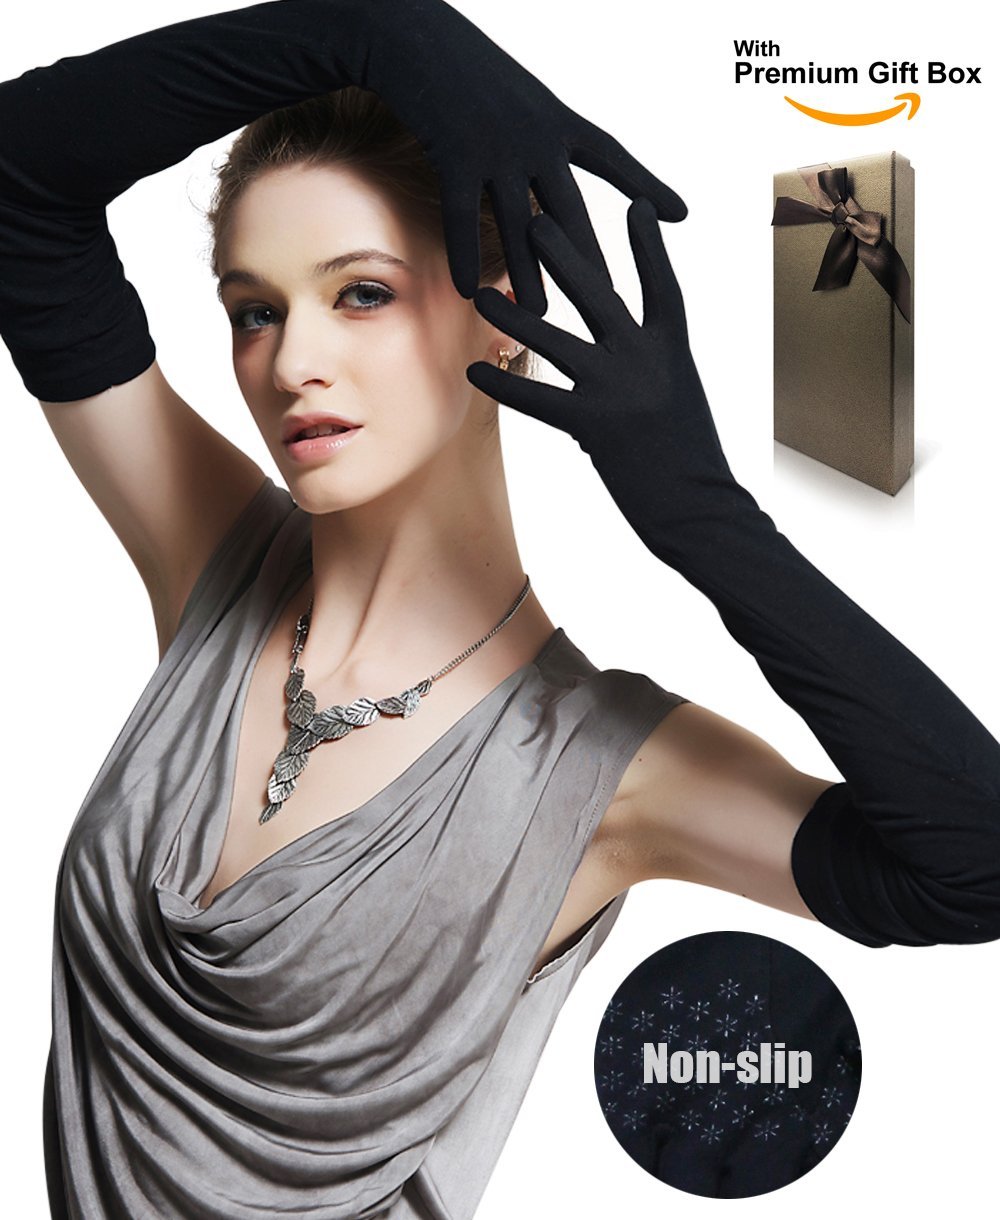 Women's UV Protection 18.0''/21.5''/23.5'' Elbow Length Long Gloves for Driving/Golf/Party/Outdoor with Gift Box